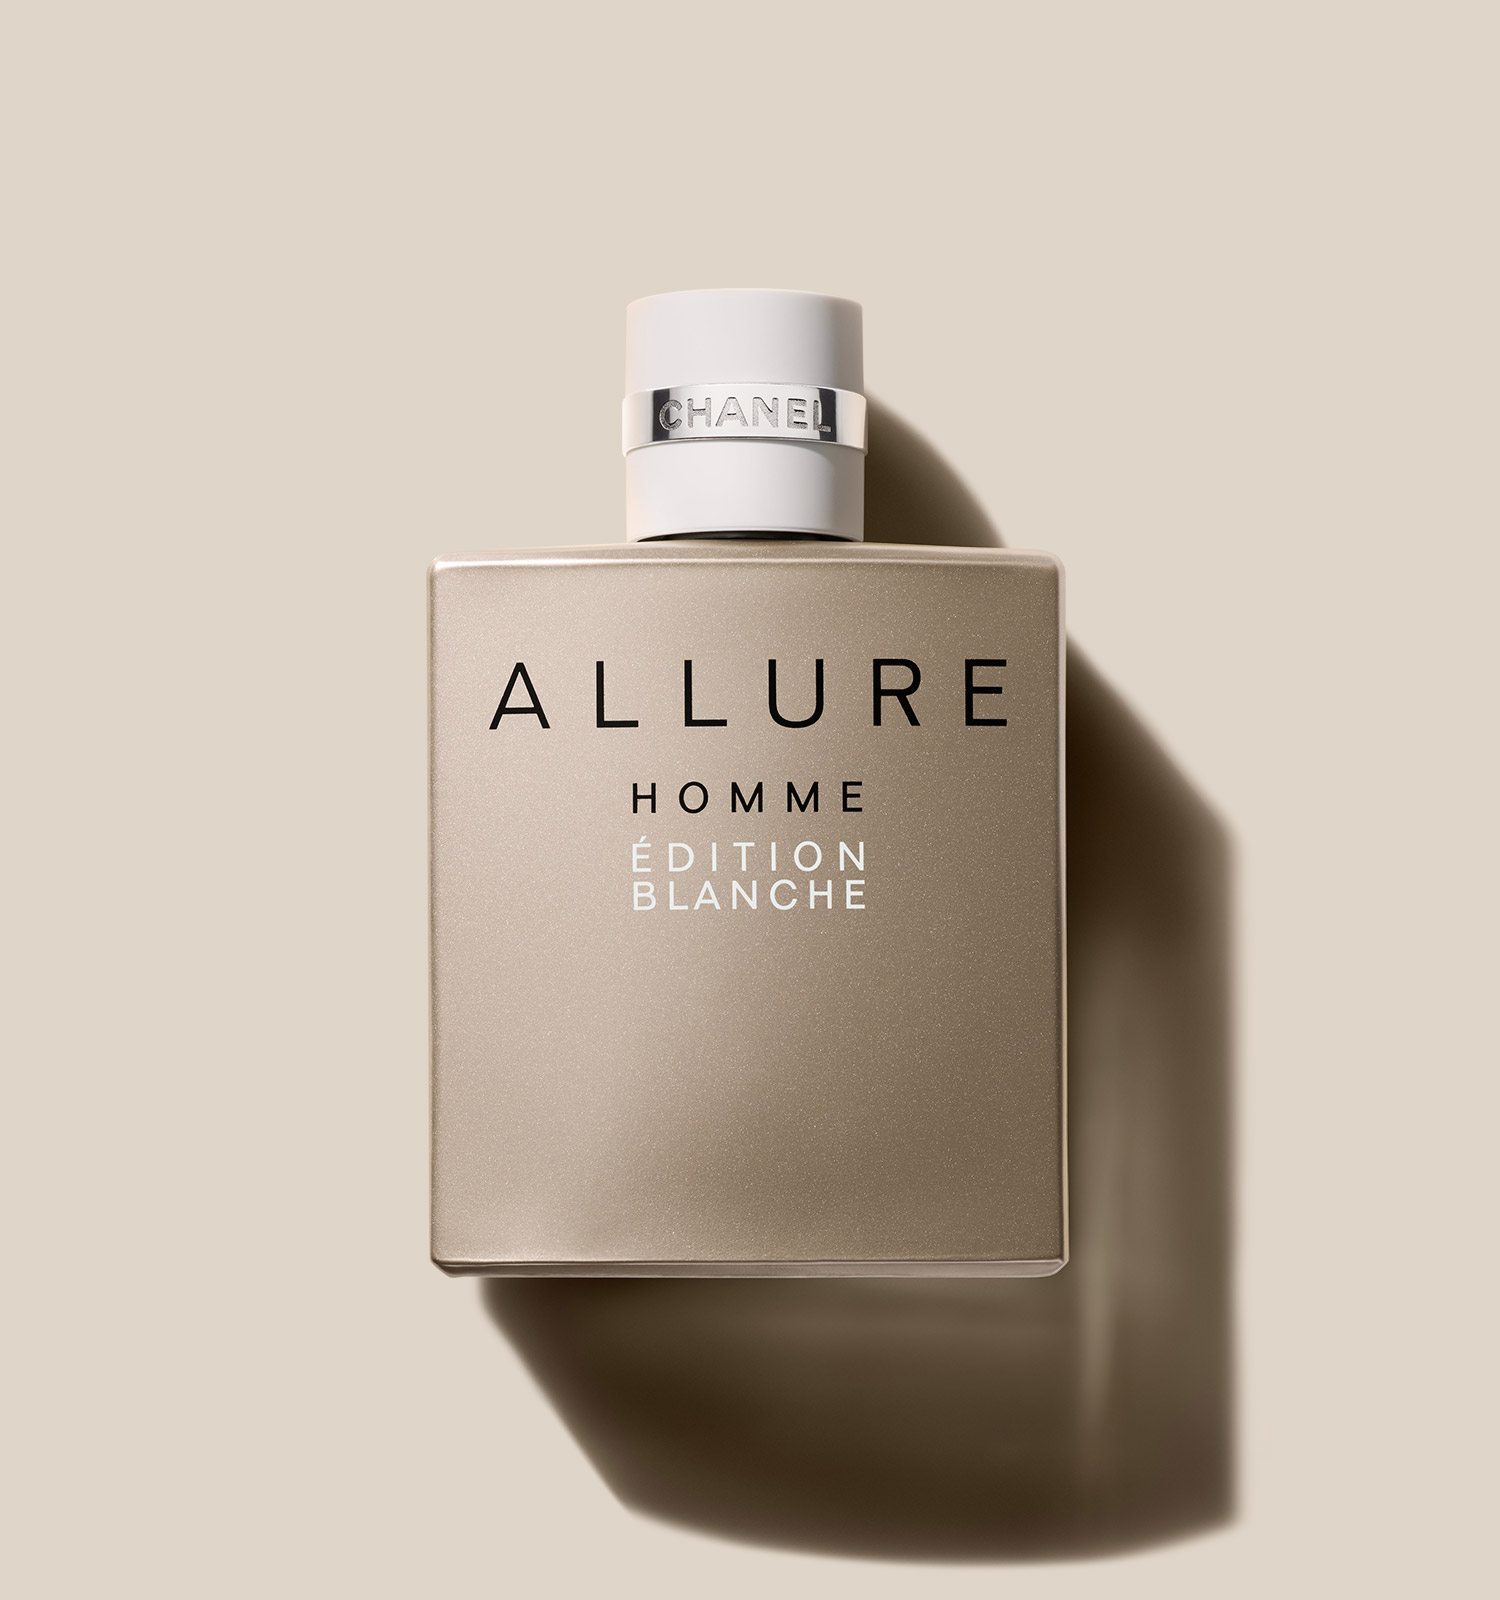 Allure Homme Édition Blanche - CHANEL